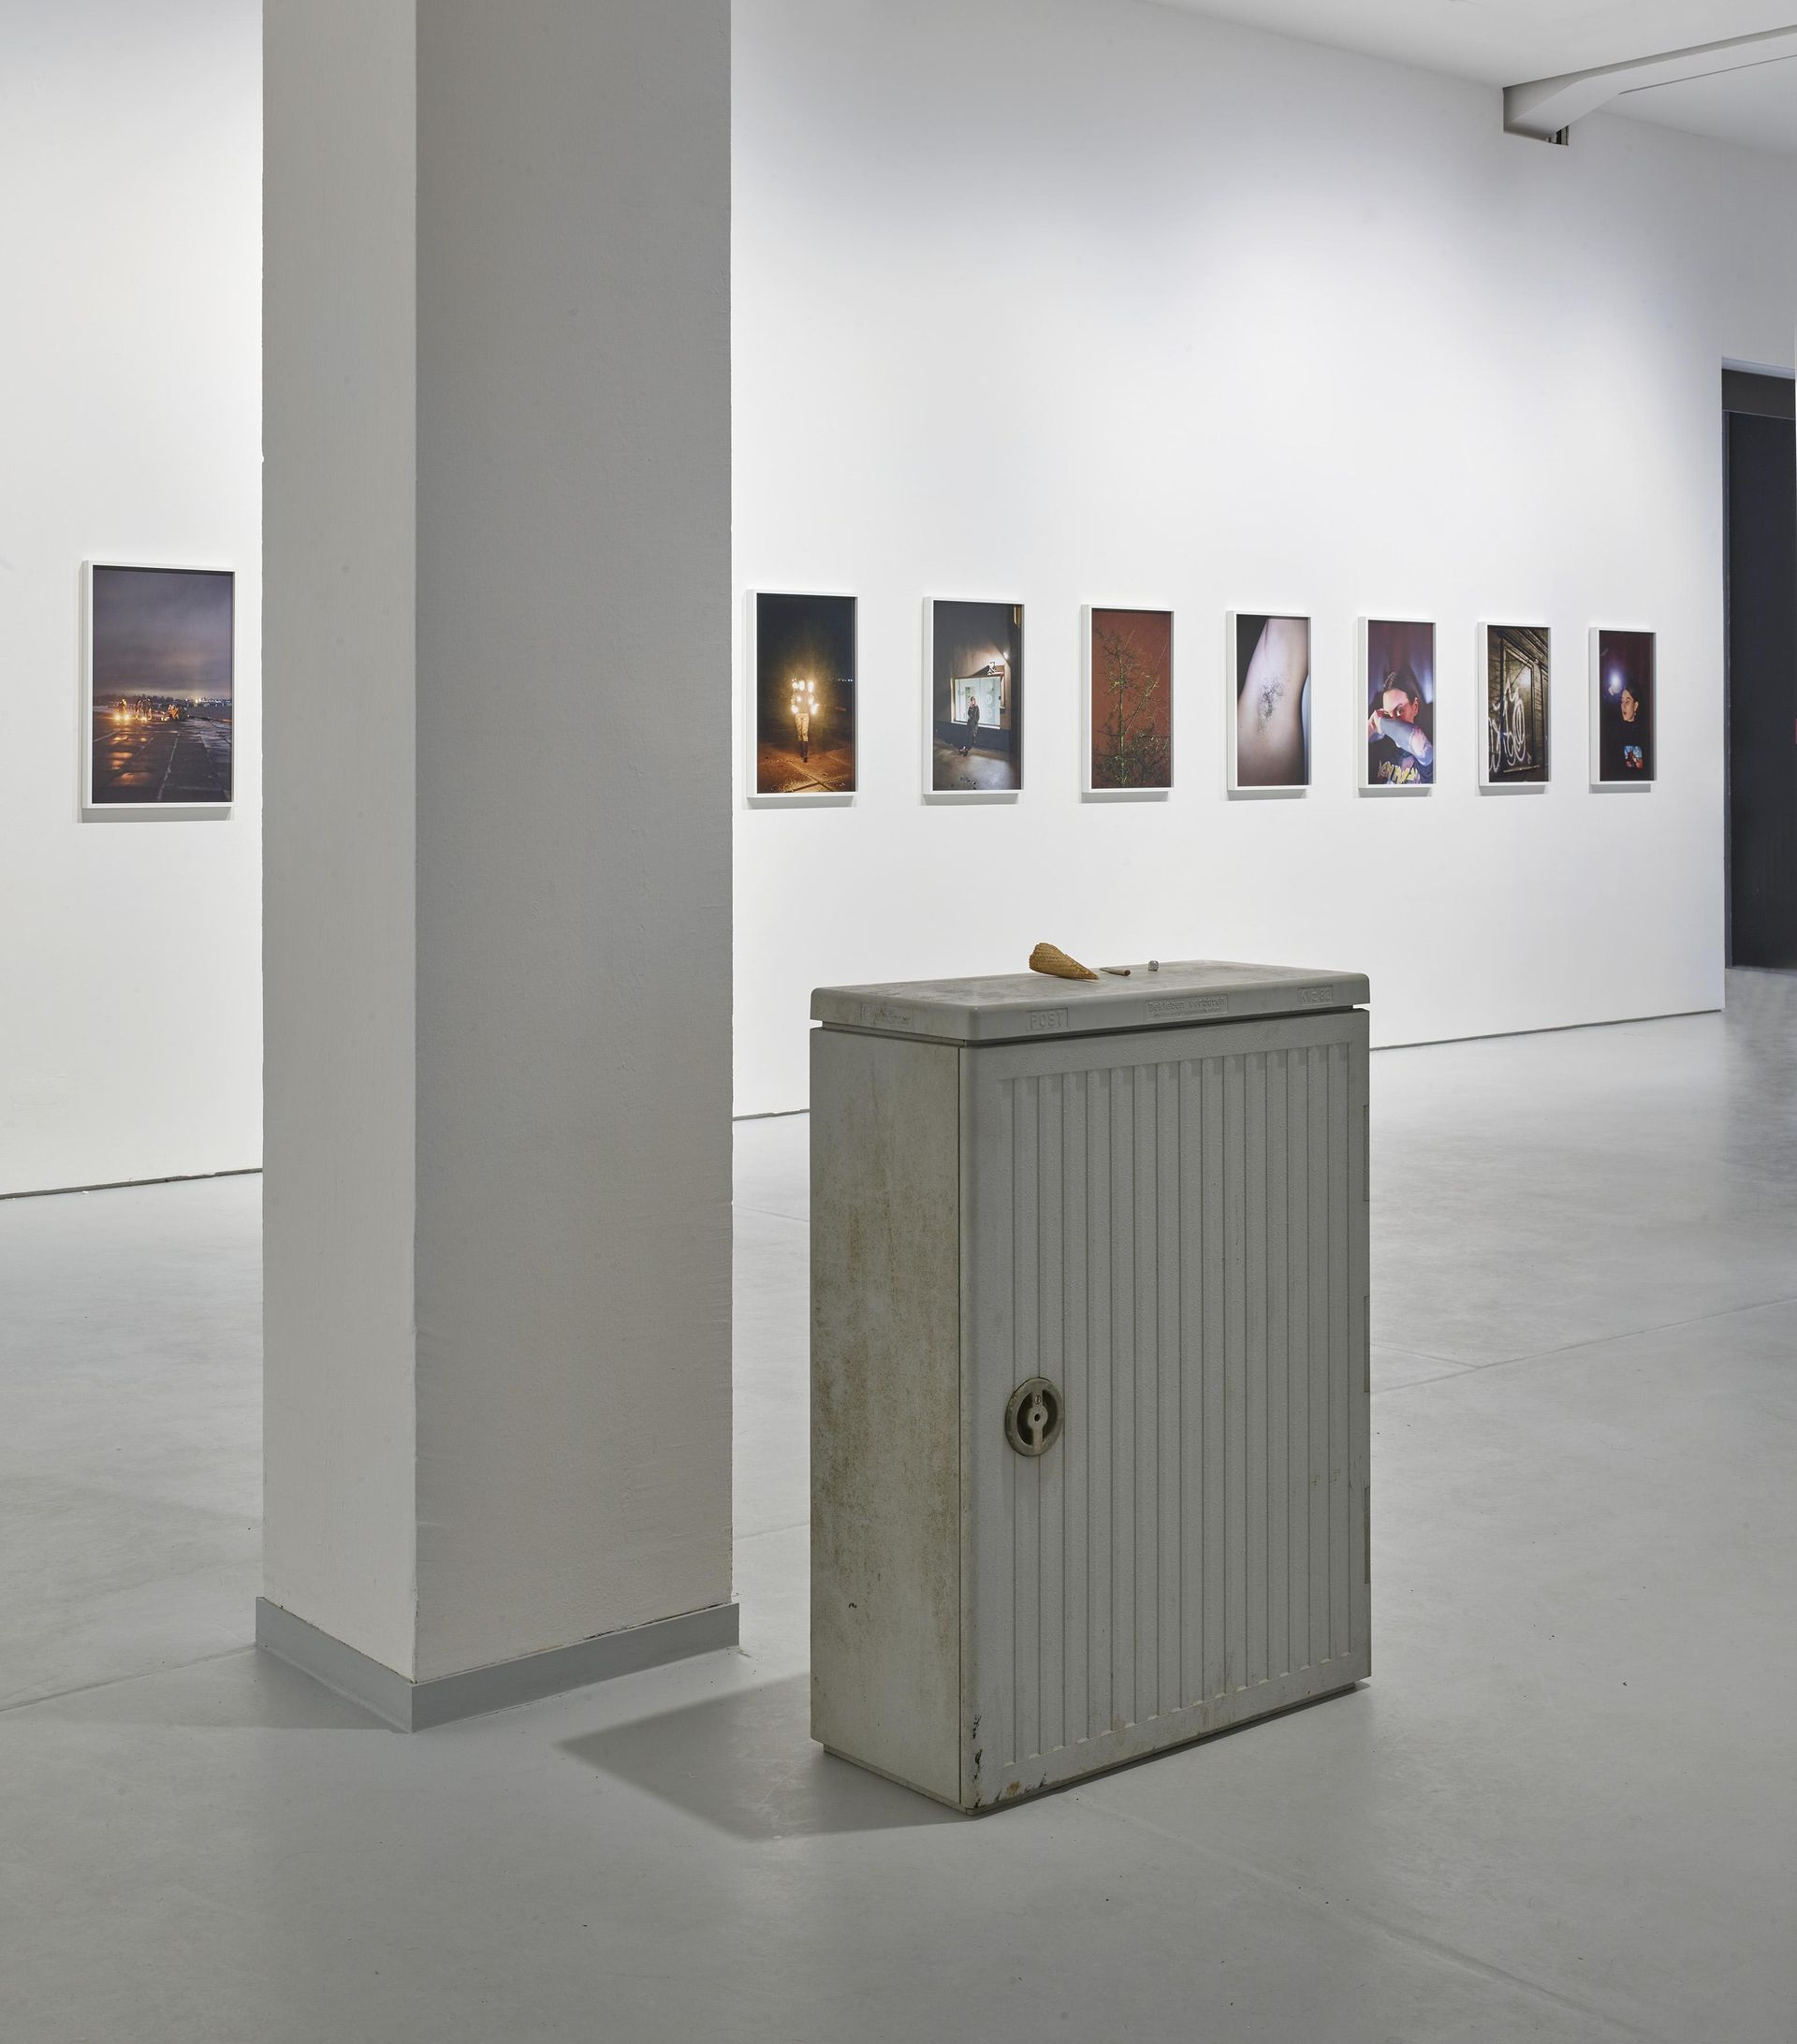 FORT, Tobias Zielony, Installation view, 2019 KAI 10 | ARTHENA FOUNDATION, Photo: Achim Kukulies